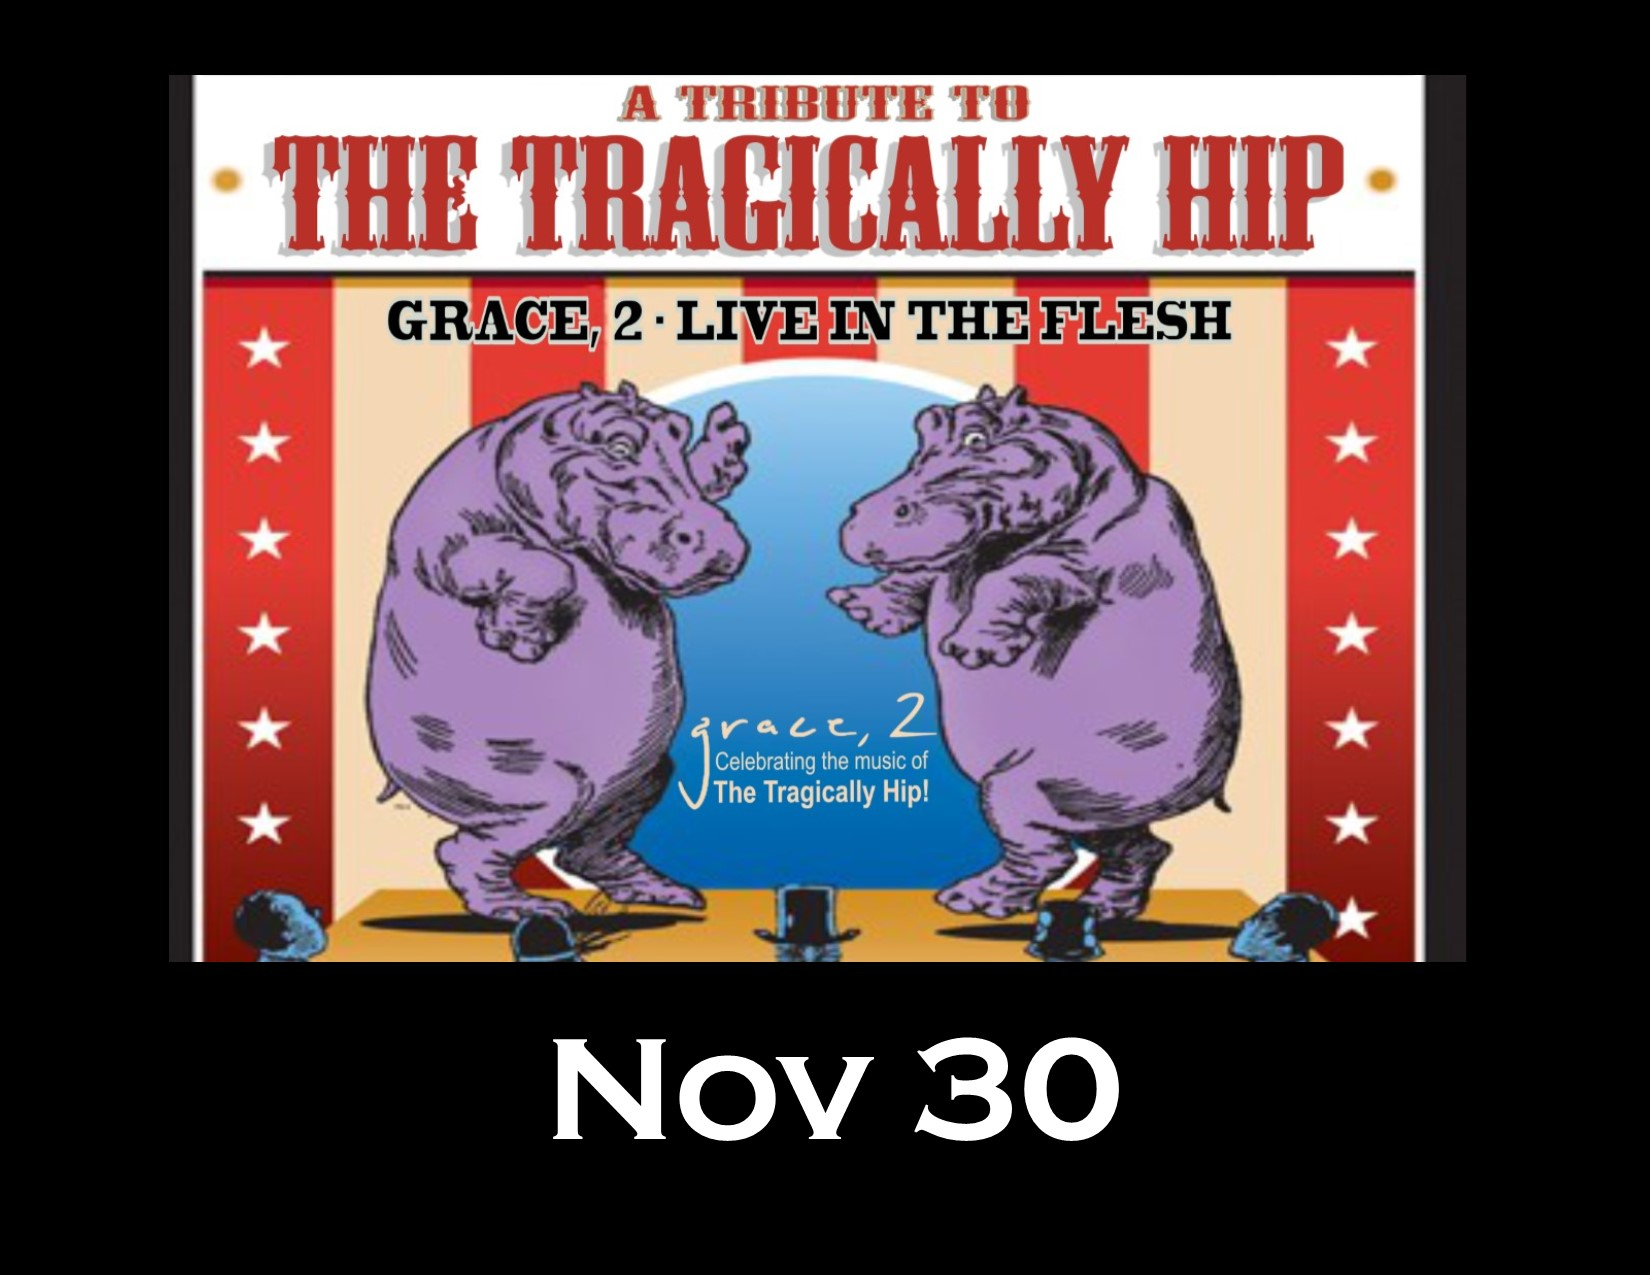 Grace 2 - Celebrating the Music of the Tragically Hip